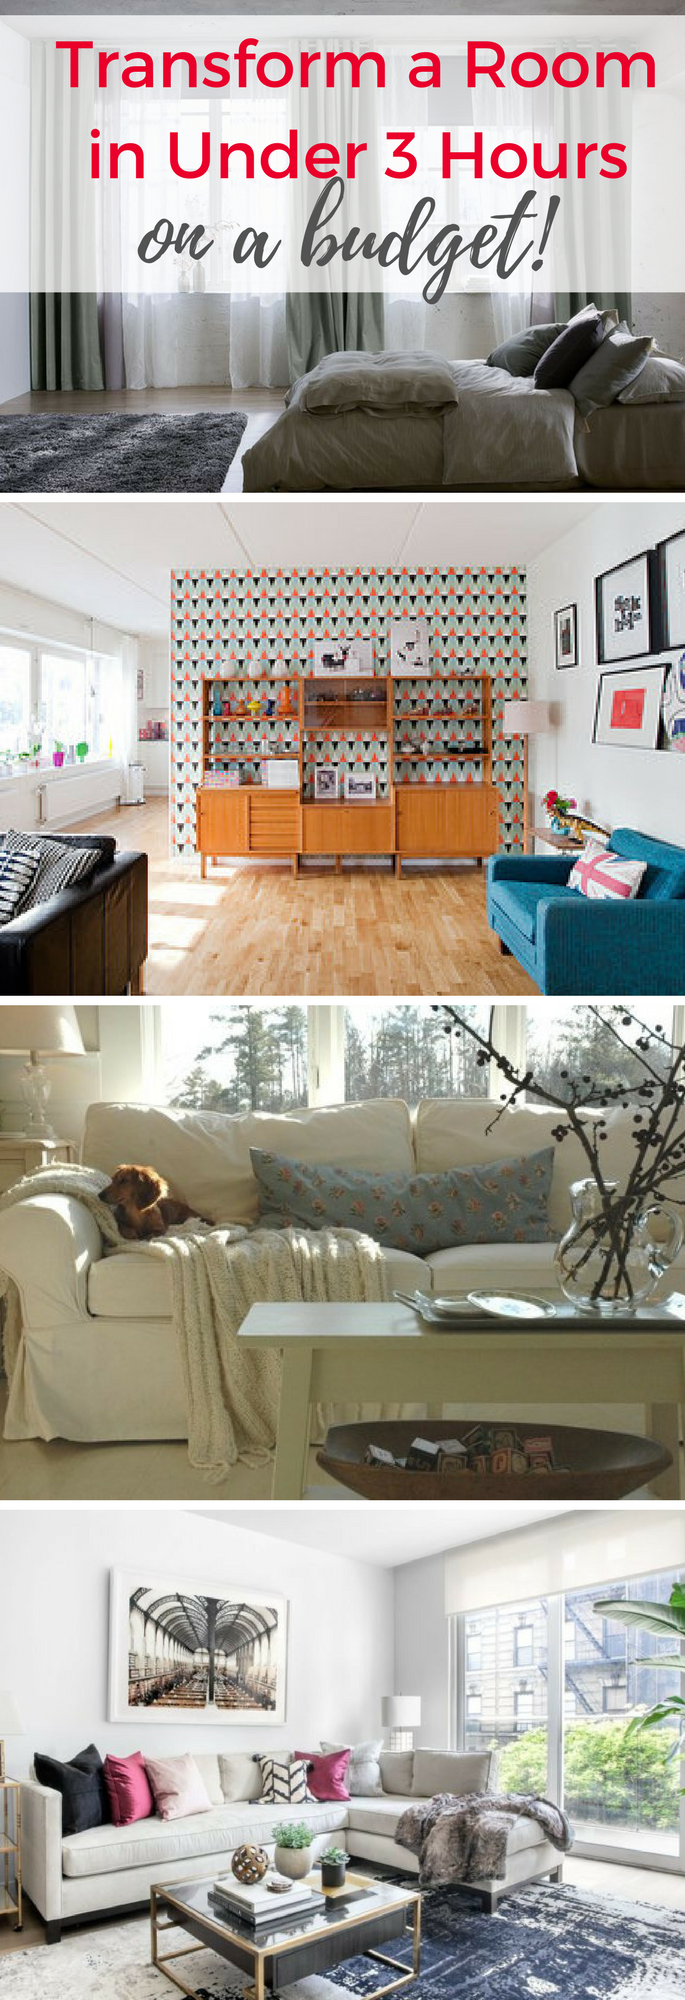 You can transform your room with simple